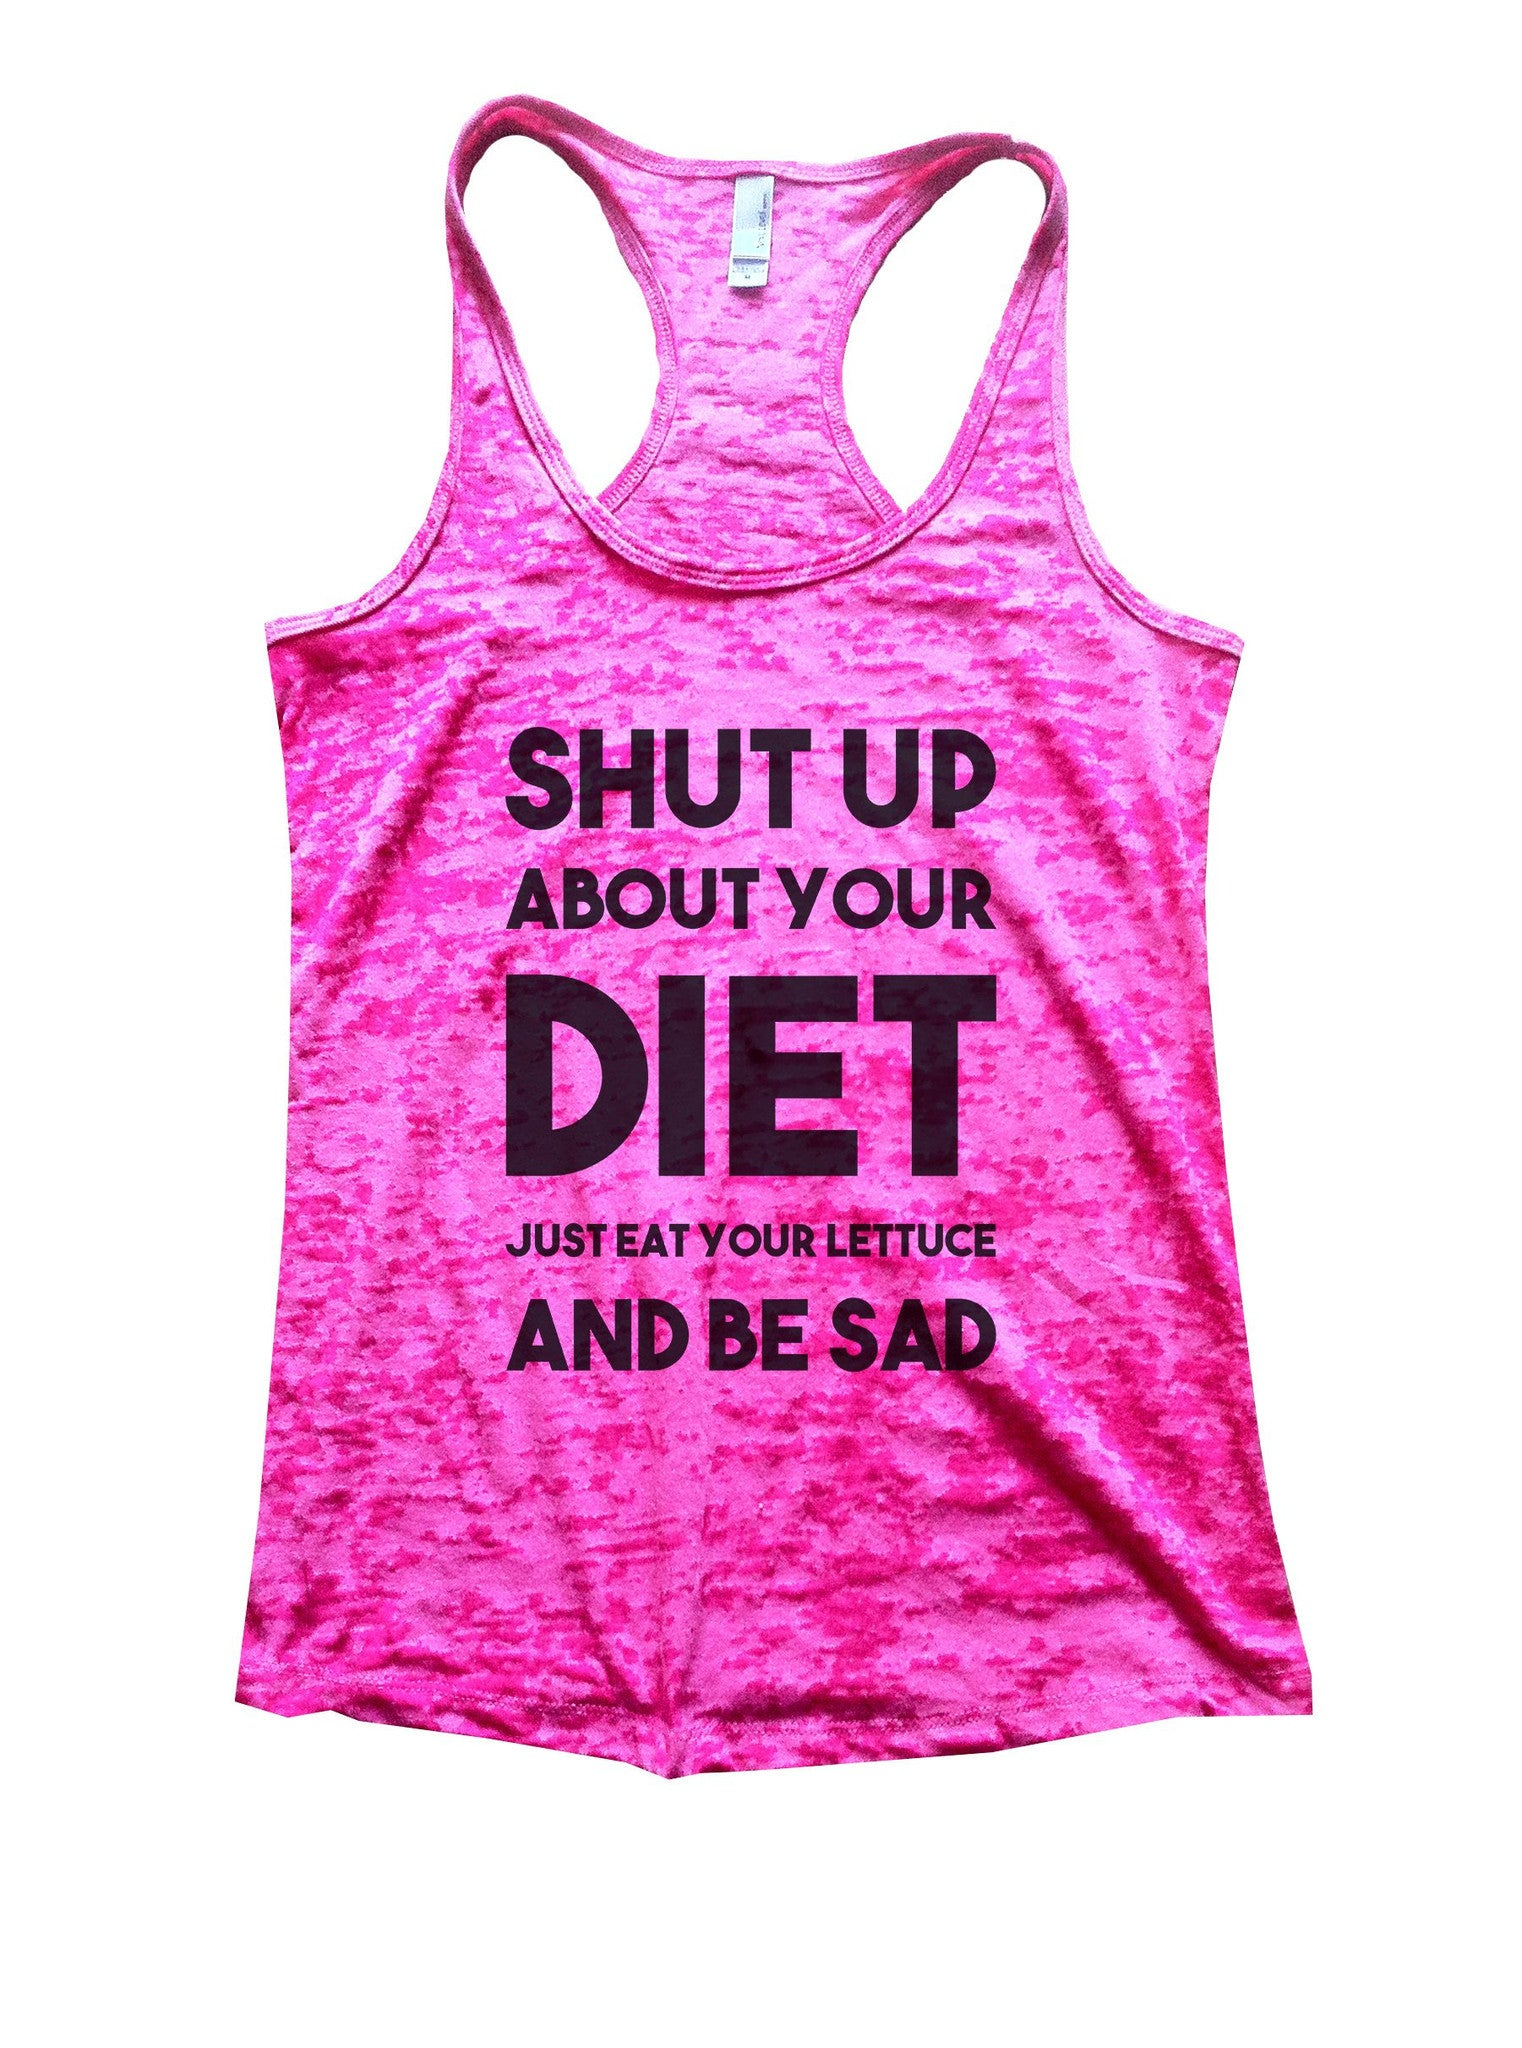 Shut Up About Your Diet Just Eat Your Lettuce And Be Sad Burnout Tank Top By BurnoutTankTops.com - 856 - Funny Shirts Tank Tops Burnouts and Triblends  - 4